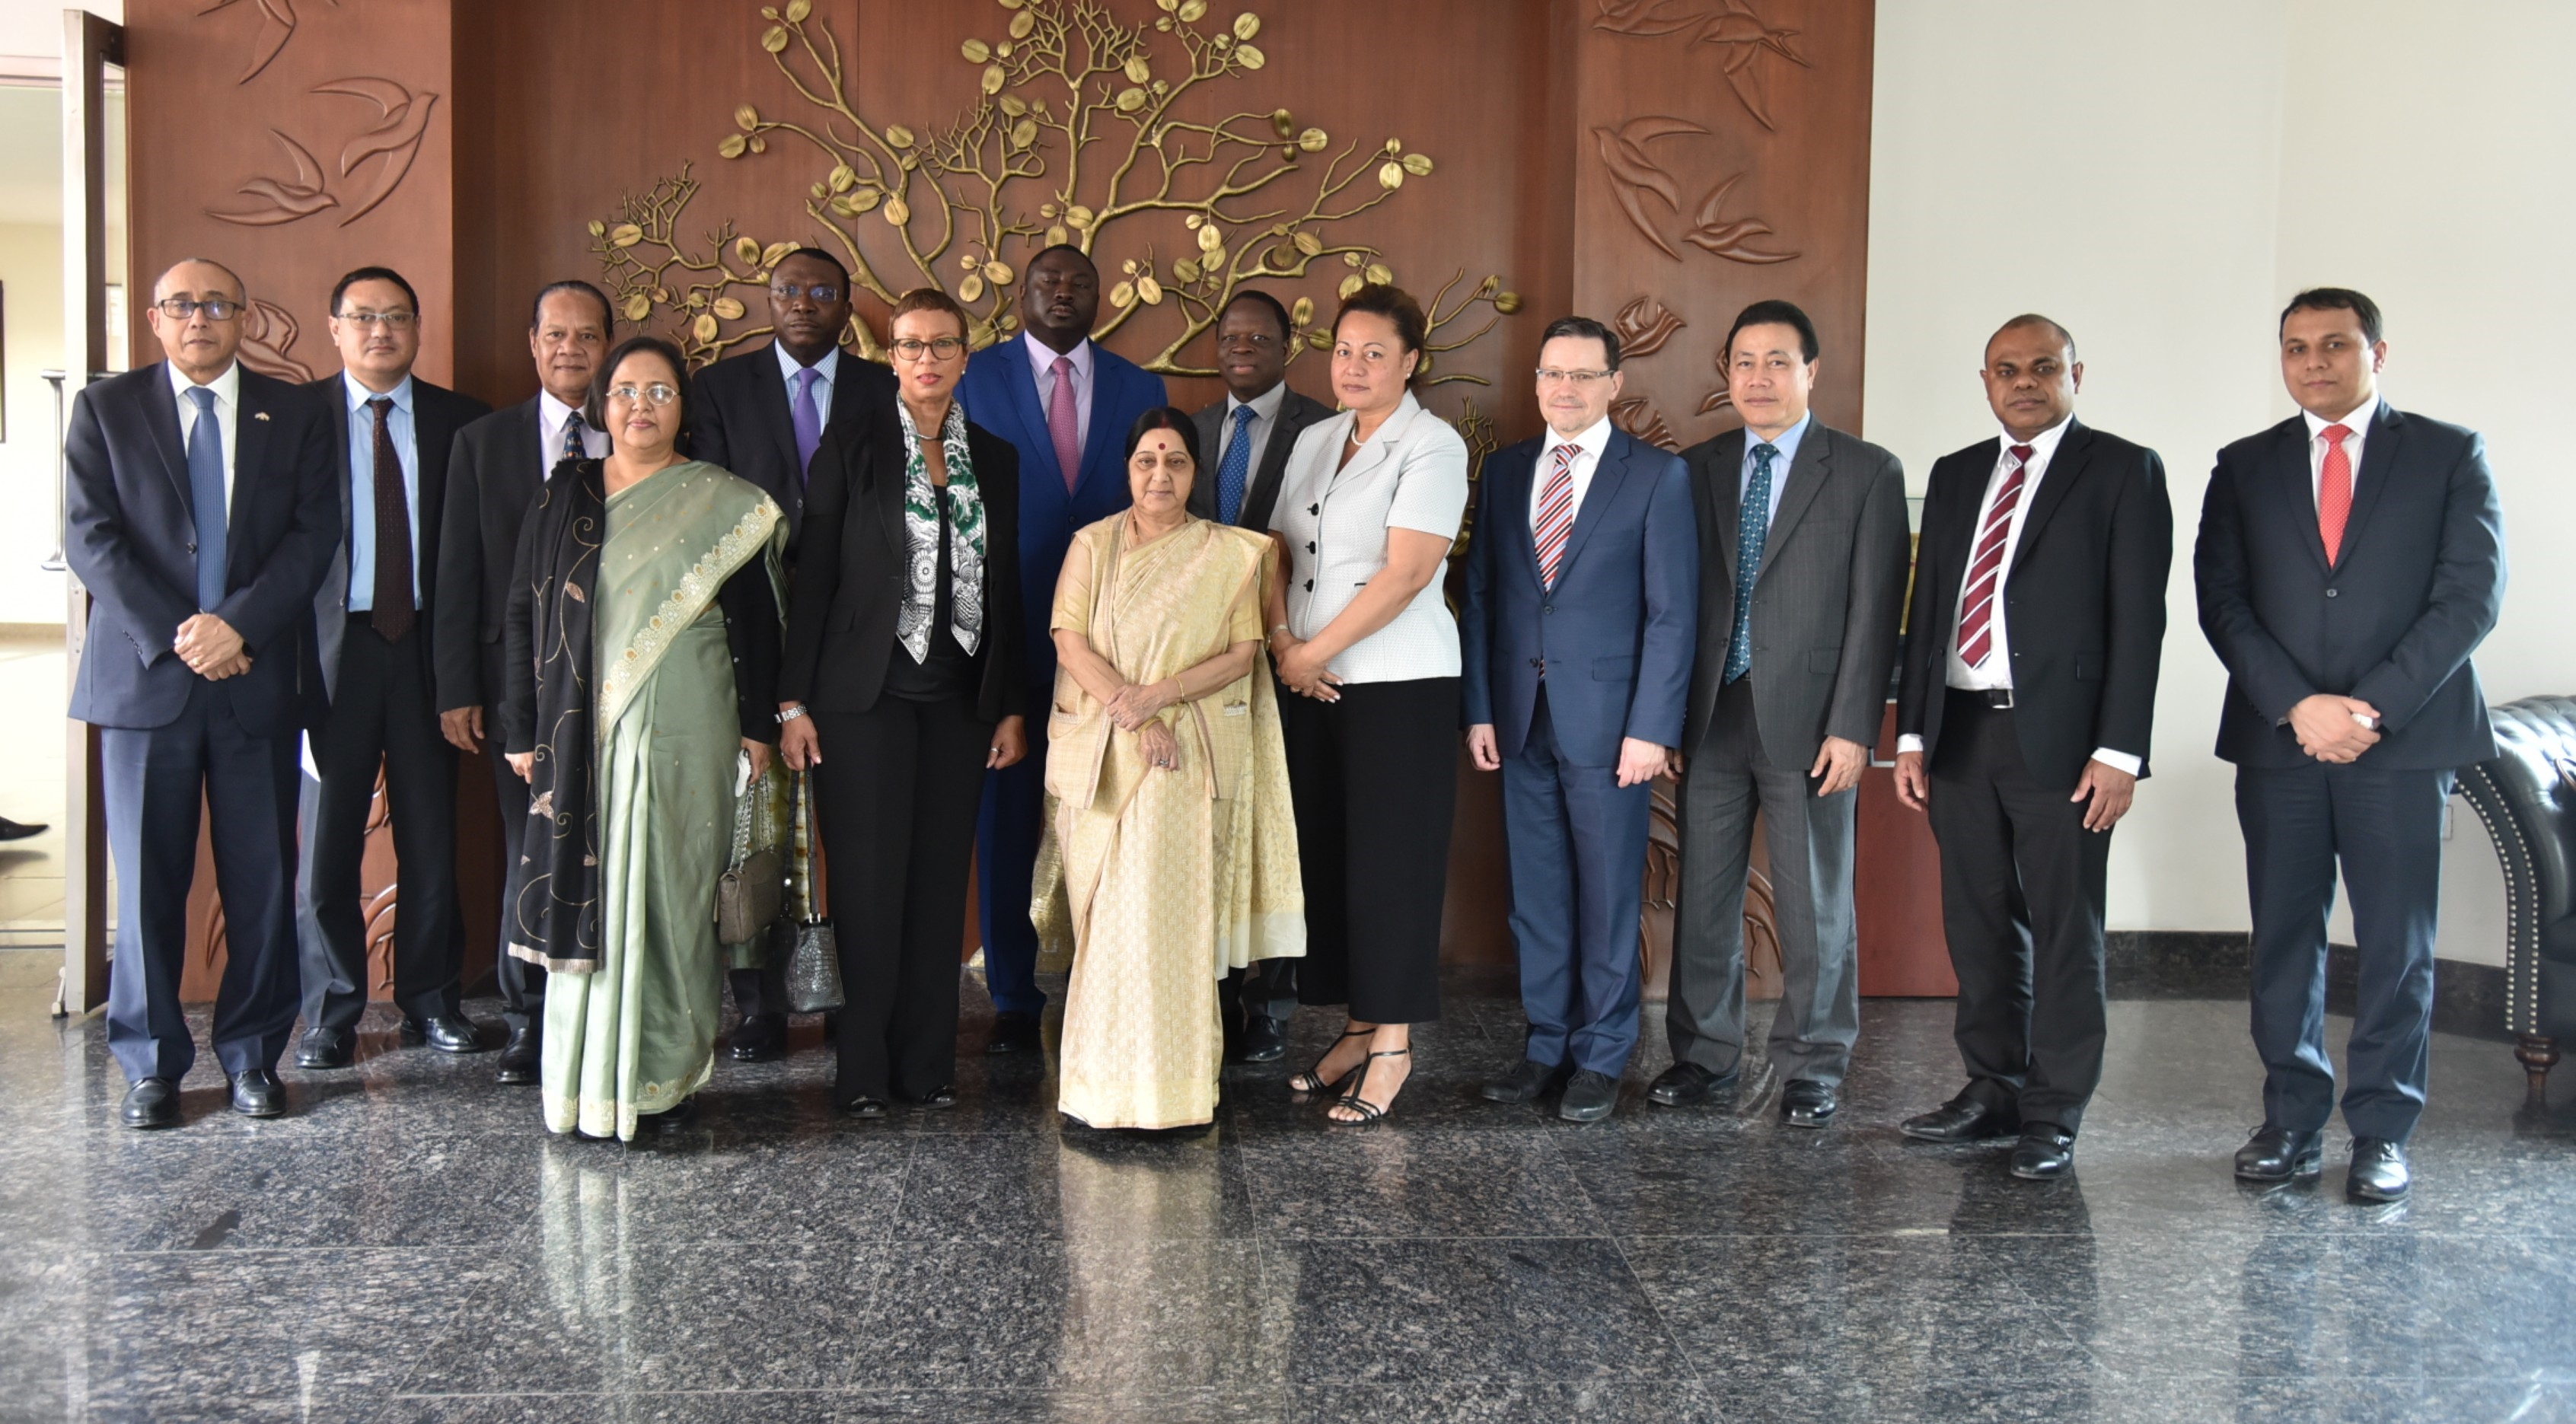 UN Ambassadors visiting India call on External Affairs Minister